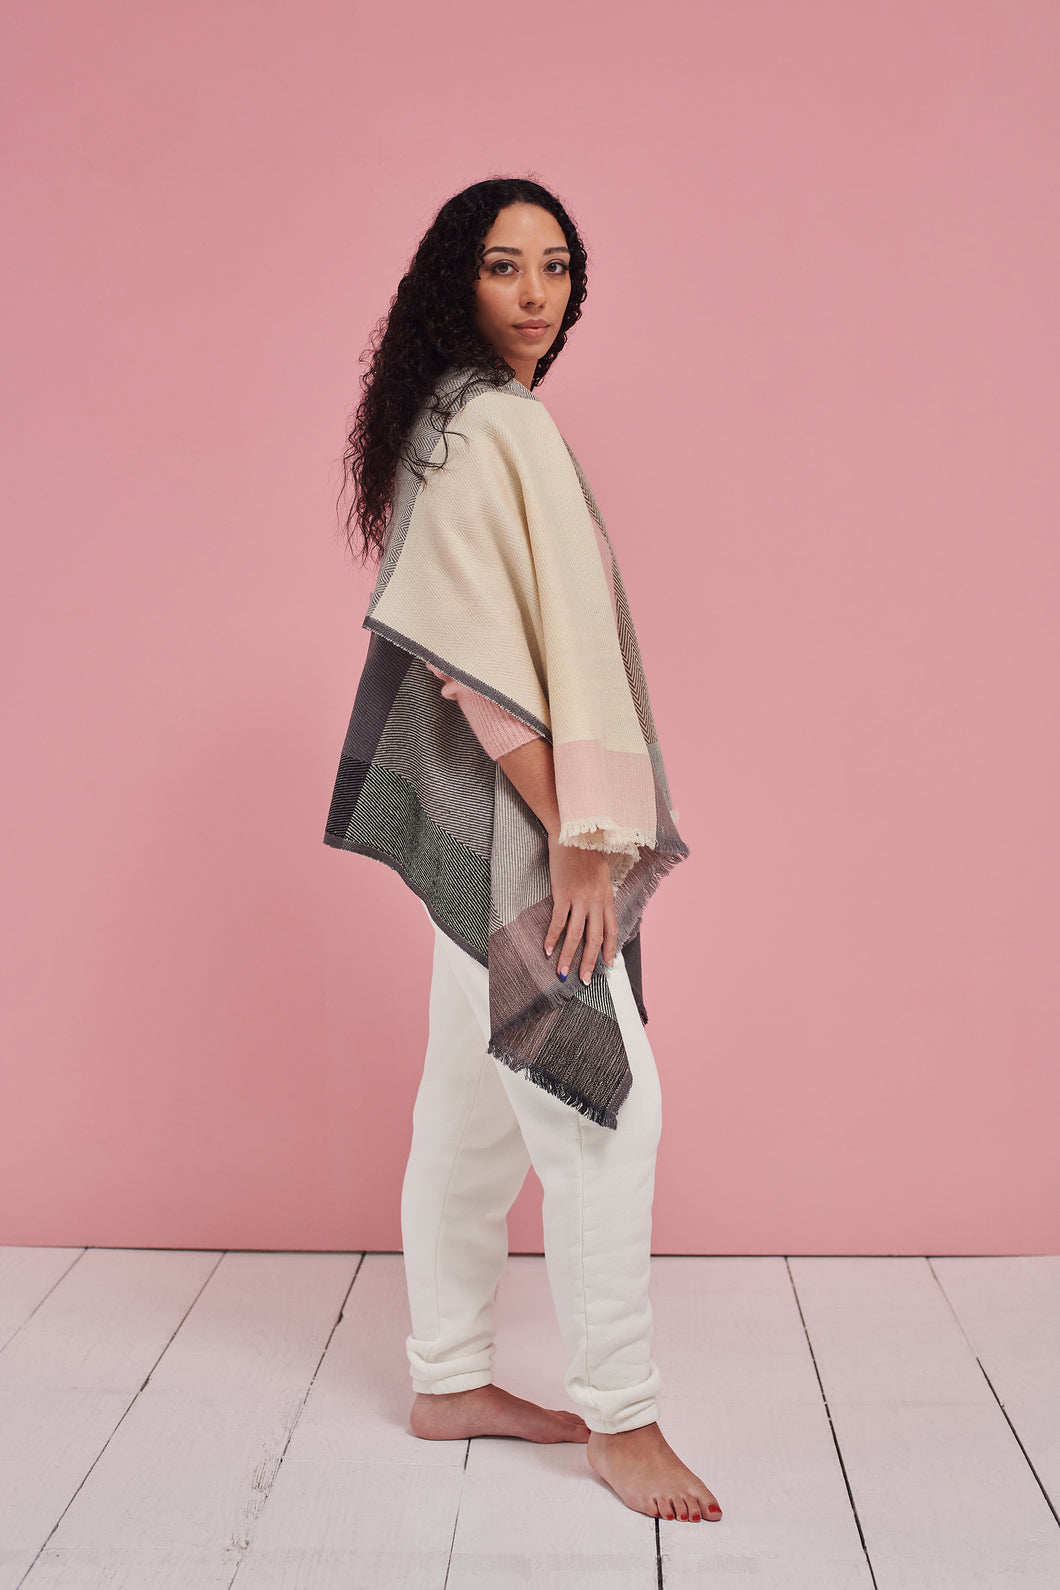 Ethically designed Scarf for all seasons in cool colours-Daria Cape Amstel